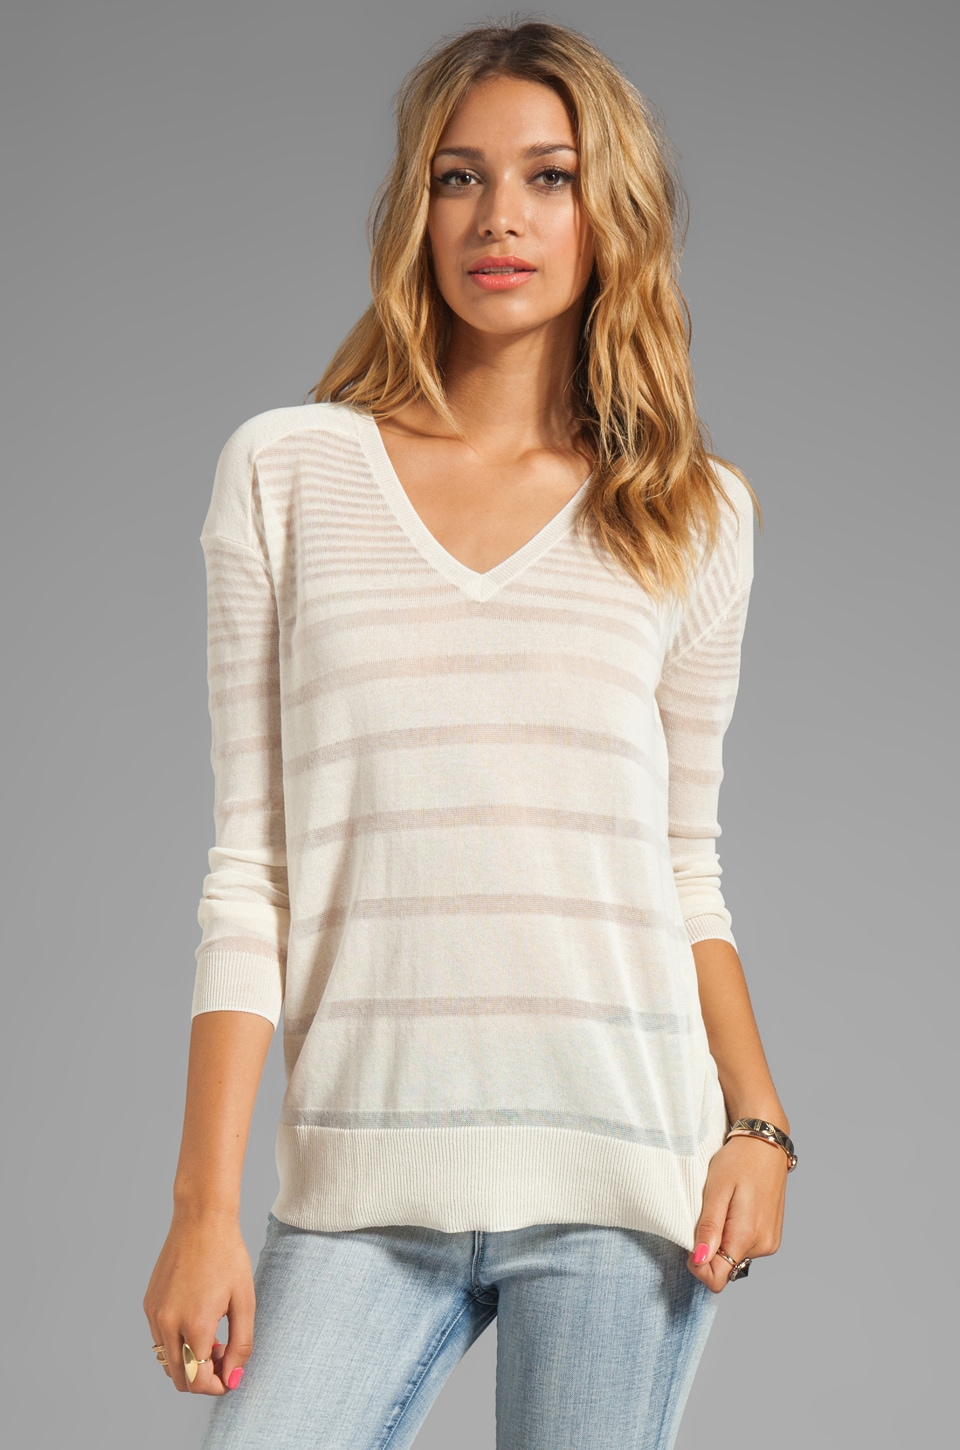 Halston Heritage Long Sleeve Sheer Striped Sweater in Bone